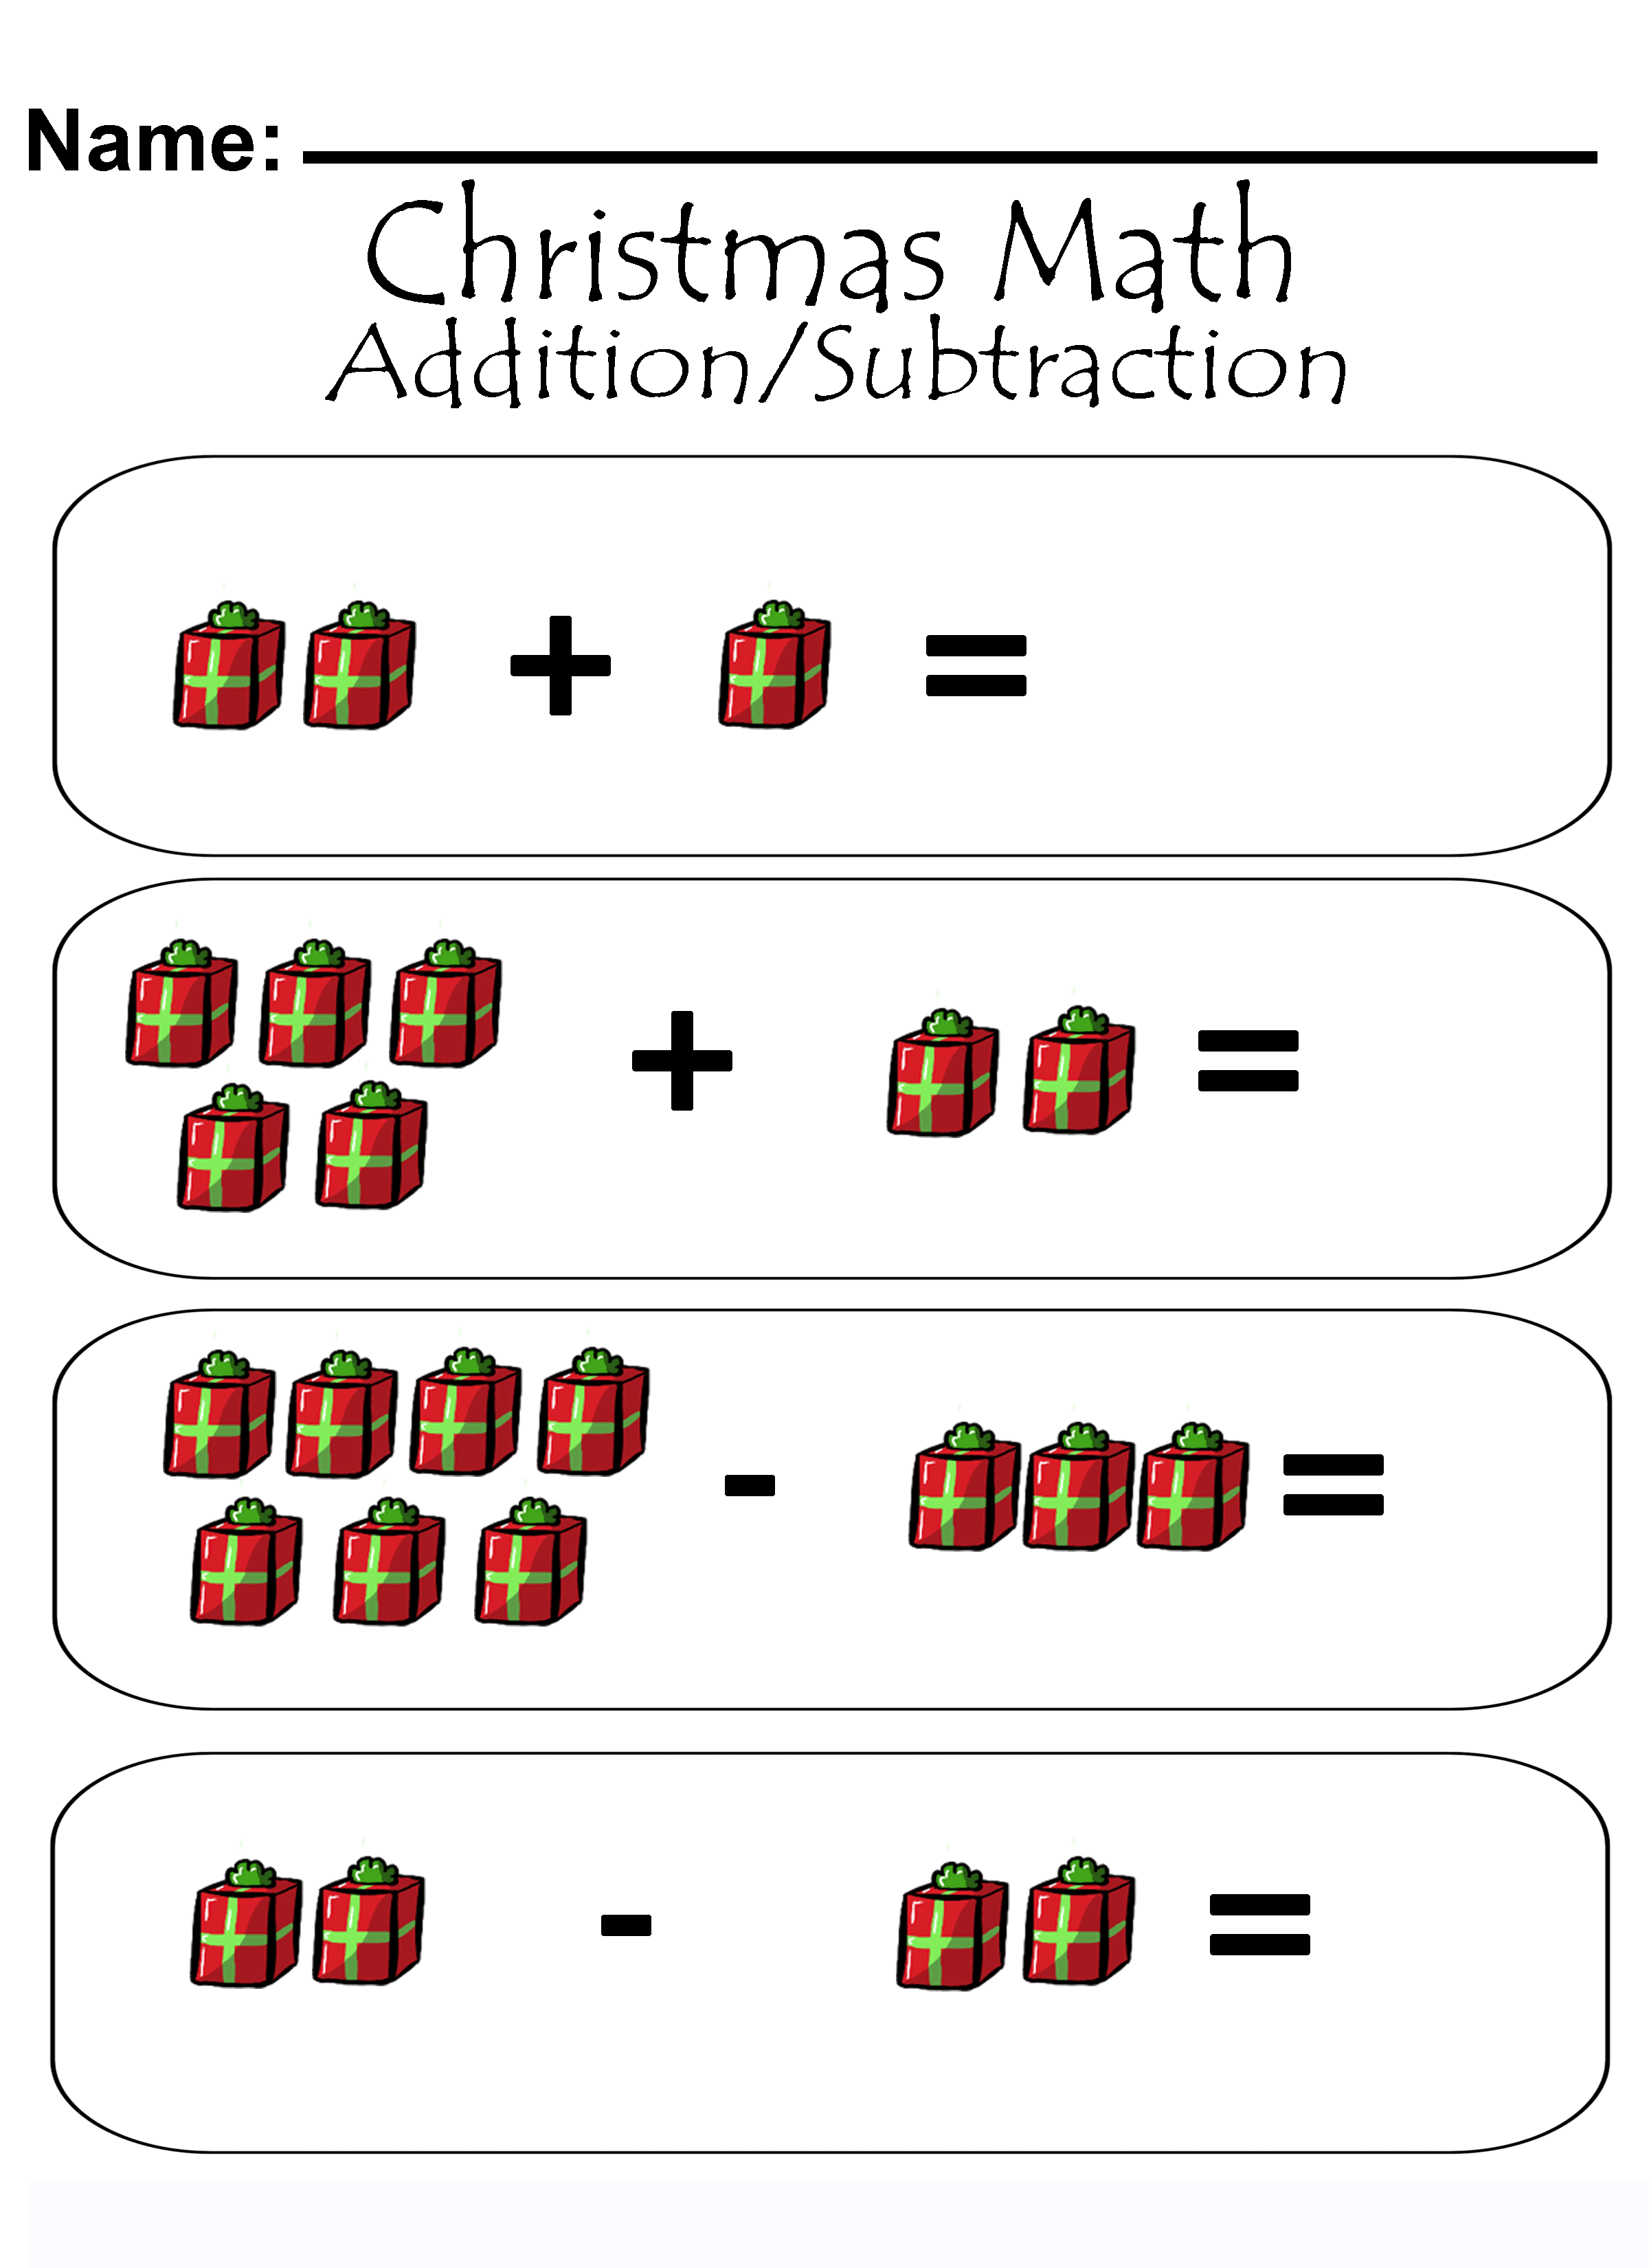 Christmas Addition/Subtraction Math Worksheets